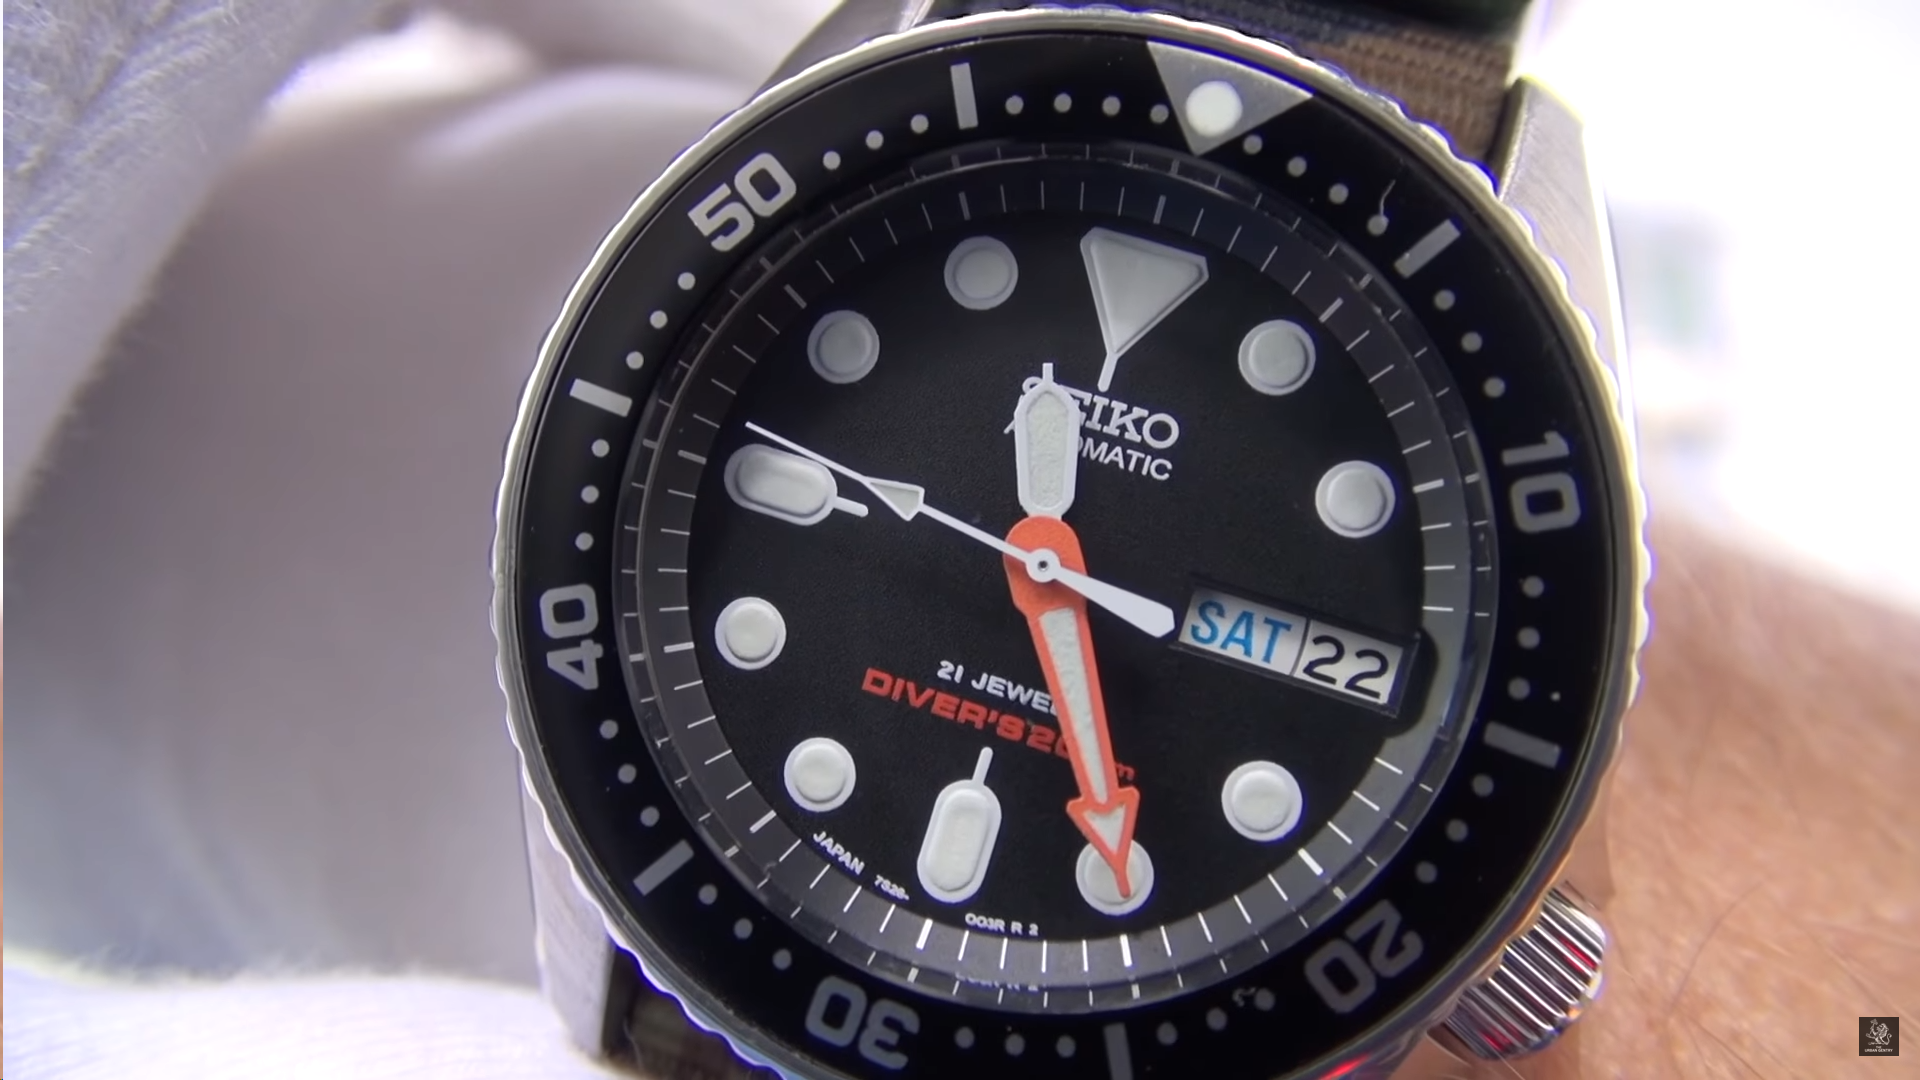 Skx013 Mods The Seiko Section Rwg Replica Watch Guide